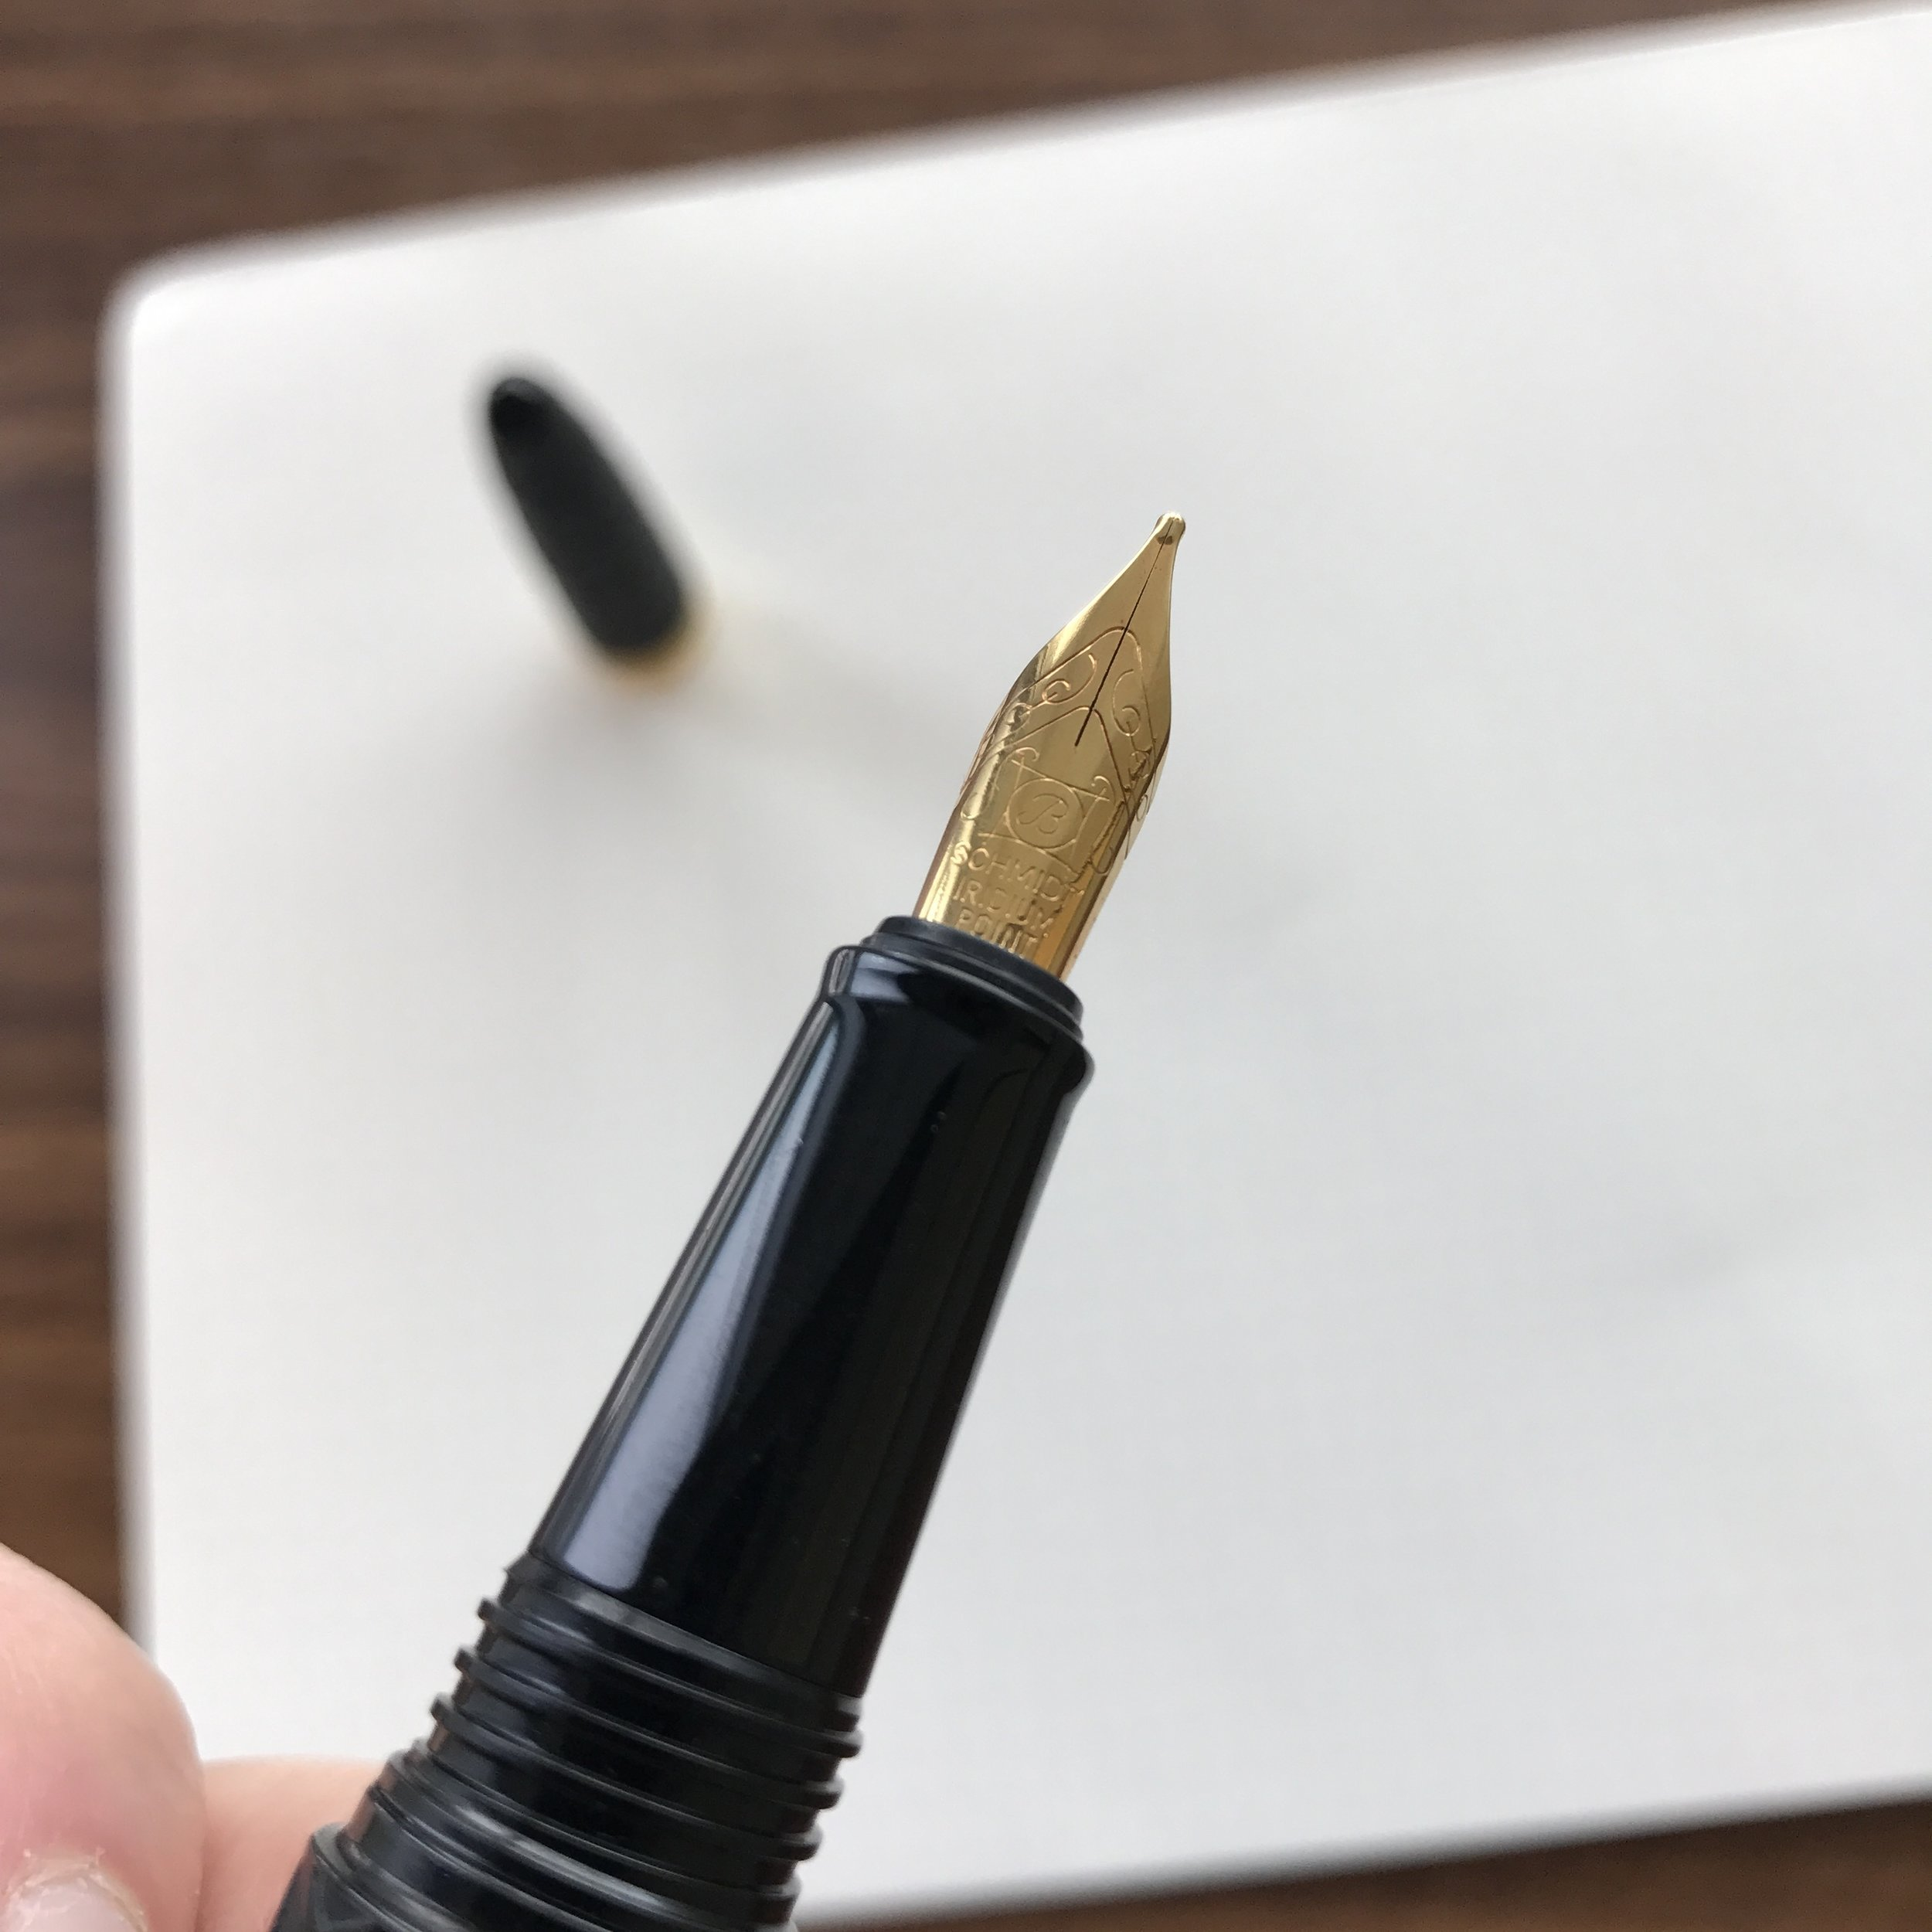 A shot of the broad, gold-plated Schmidt nib on the Benu Skull pen. Check out the almost stubbish shape of the nib!